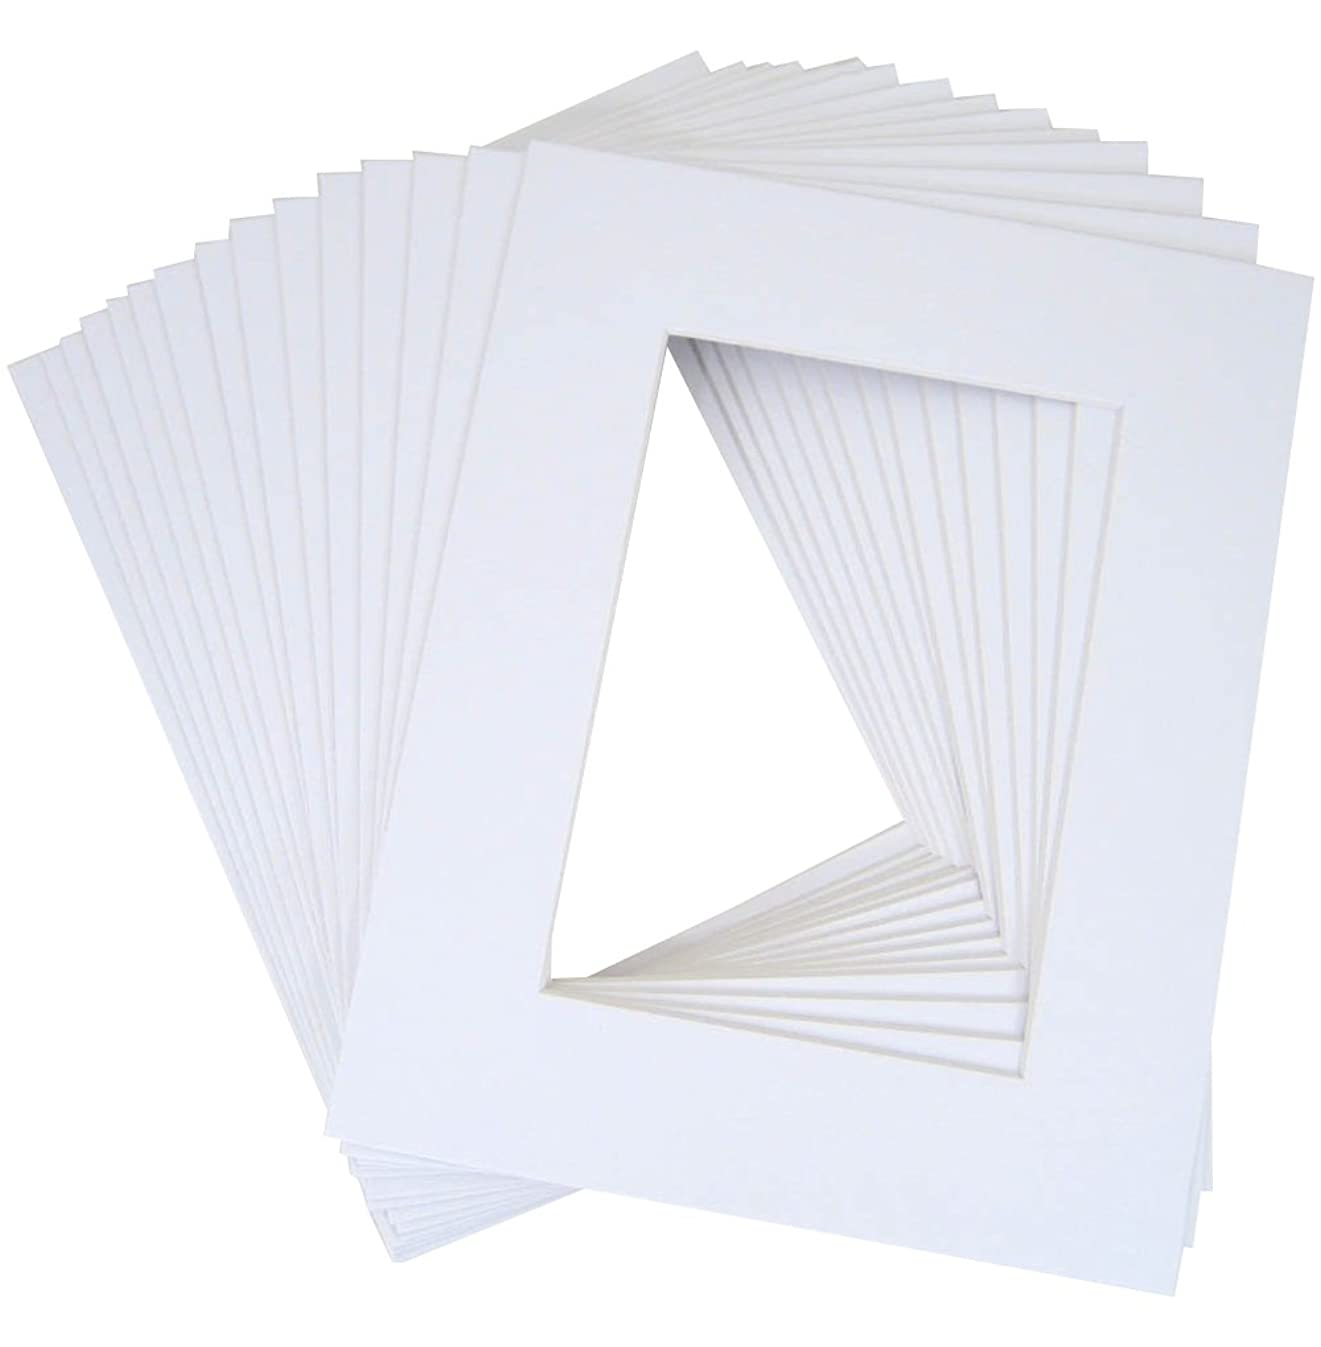 Golden State Art, Pack of 20 11x14 White Picture Mats with White Core Bevel Cut for 8x10 Pictures